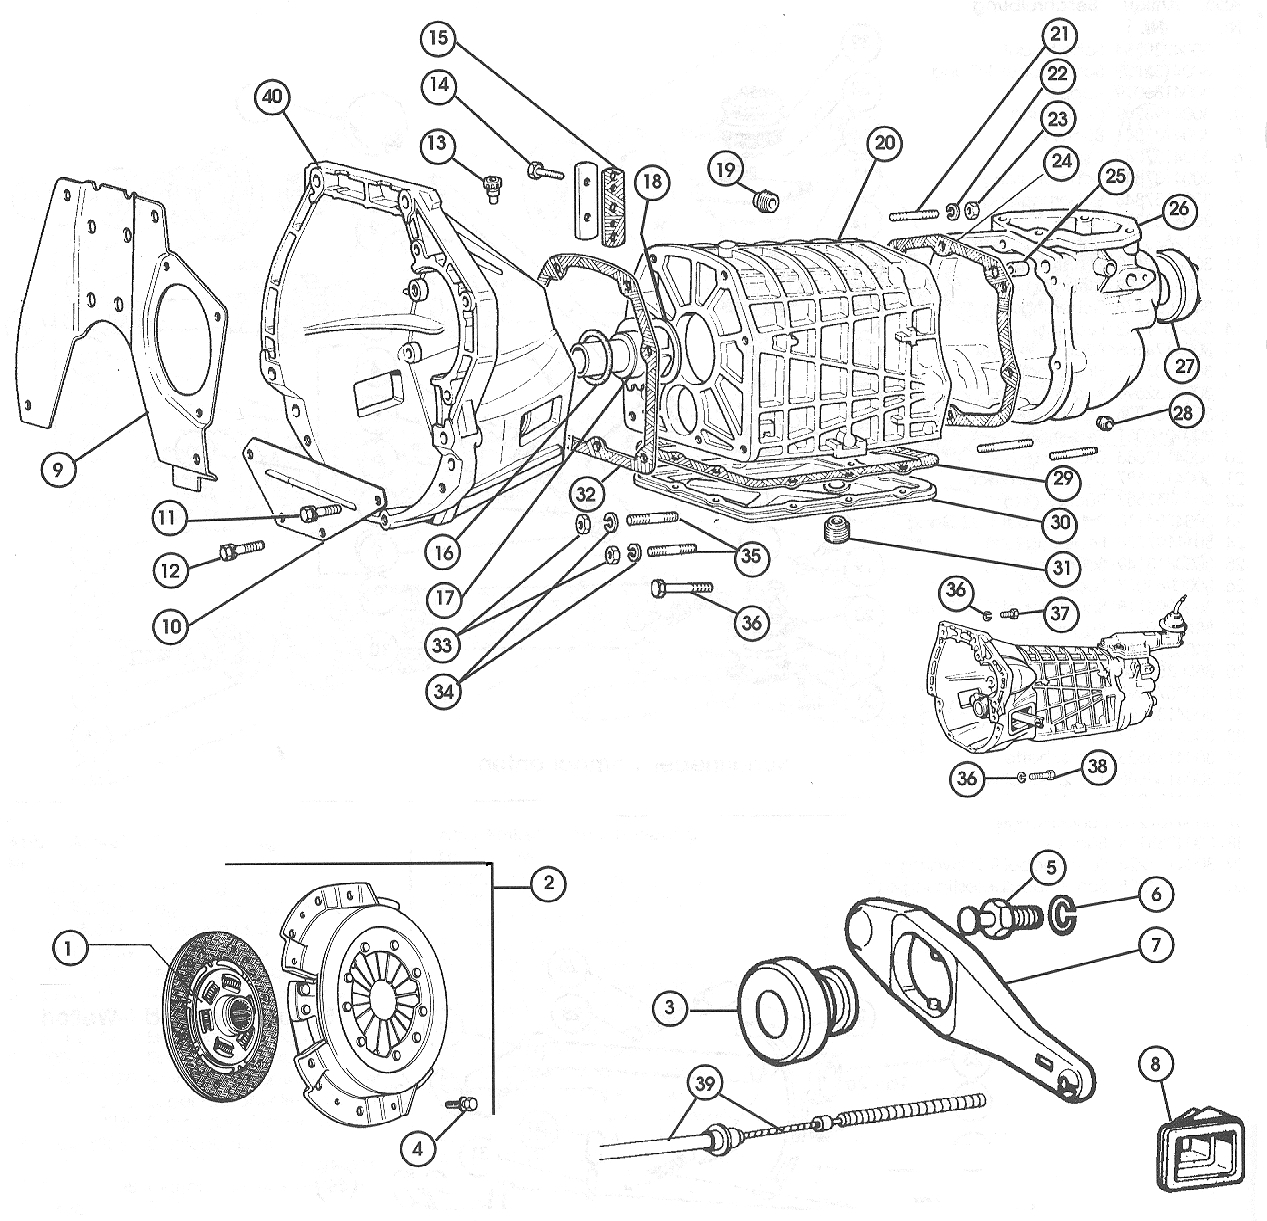 fiat 500 wiring diagram airbag